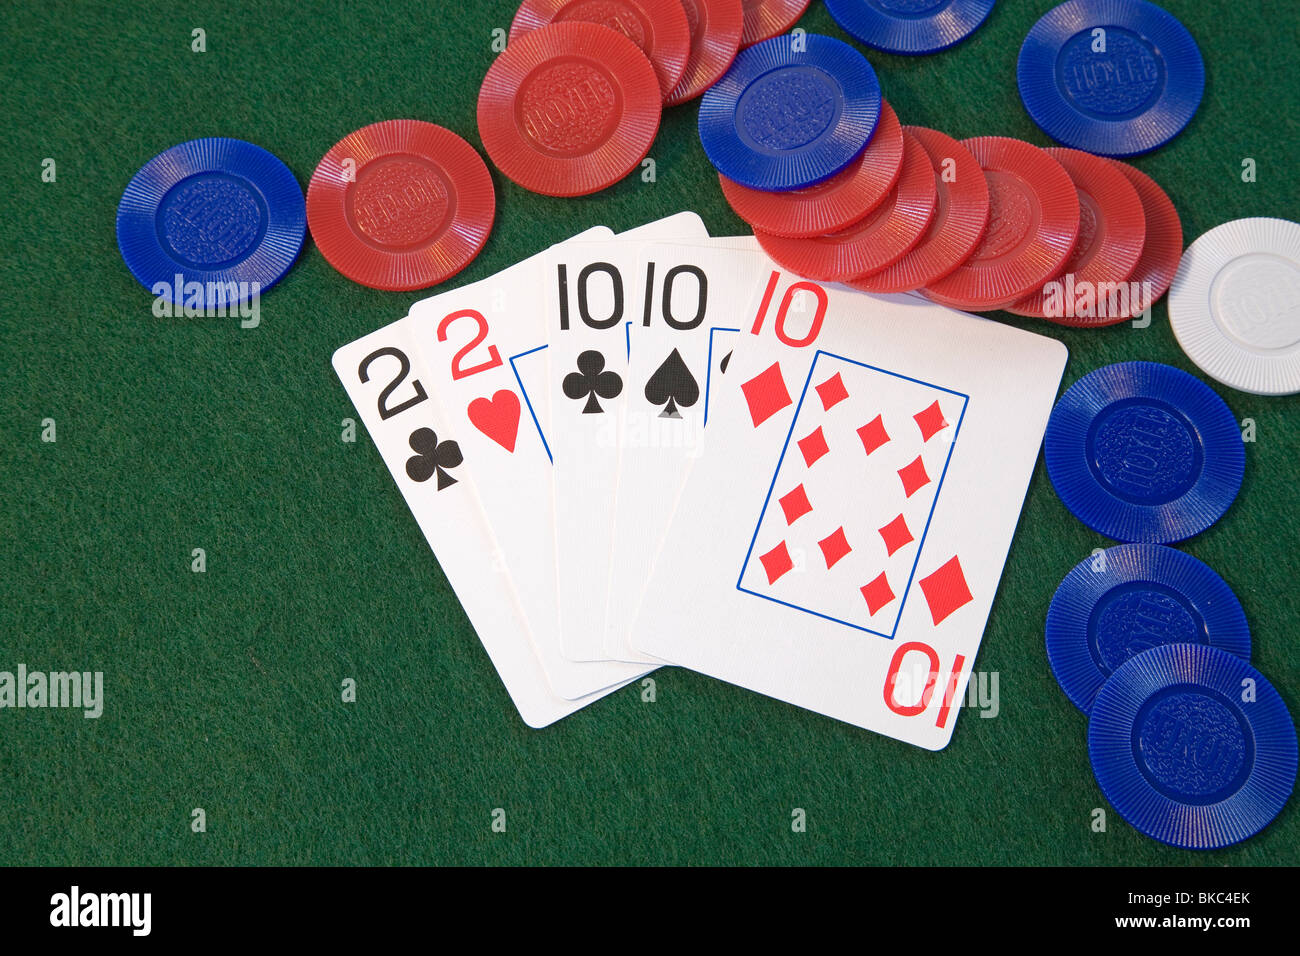 A 'full house' poker hand, deuces and tens, in five card draw or stud poker - Stock Image